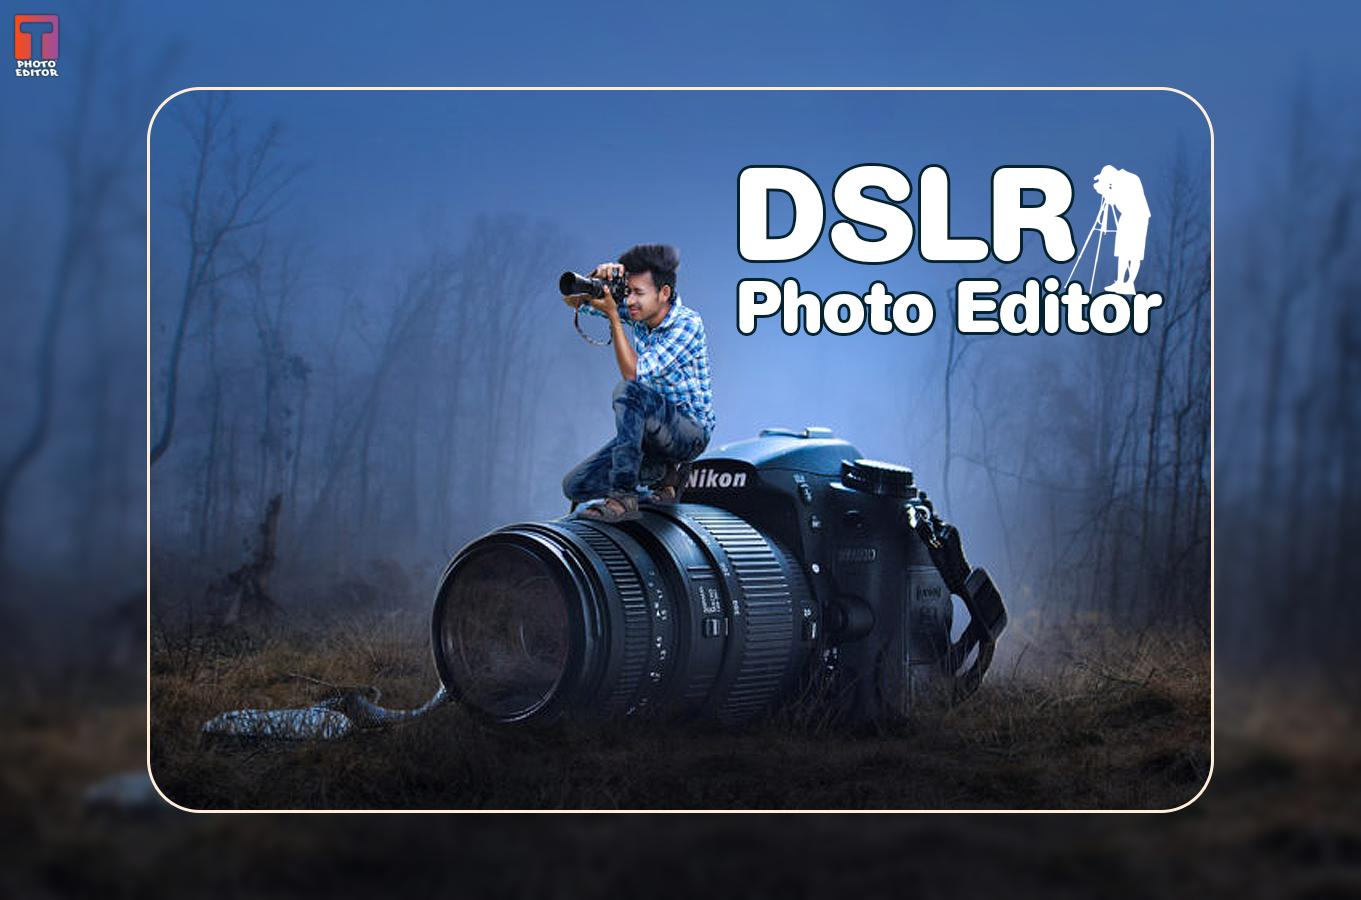 Dslr Cut Cut Background Changer Photo Editor For Android Apk Download